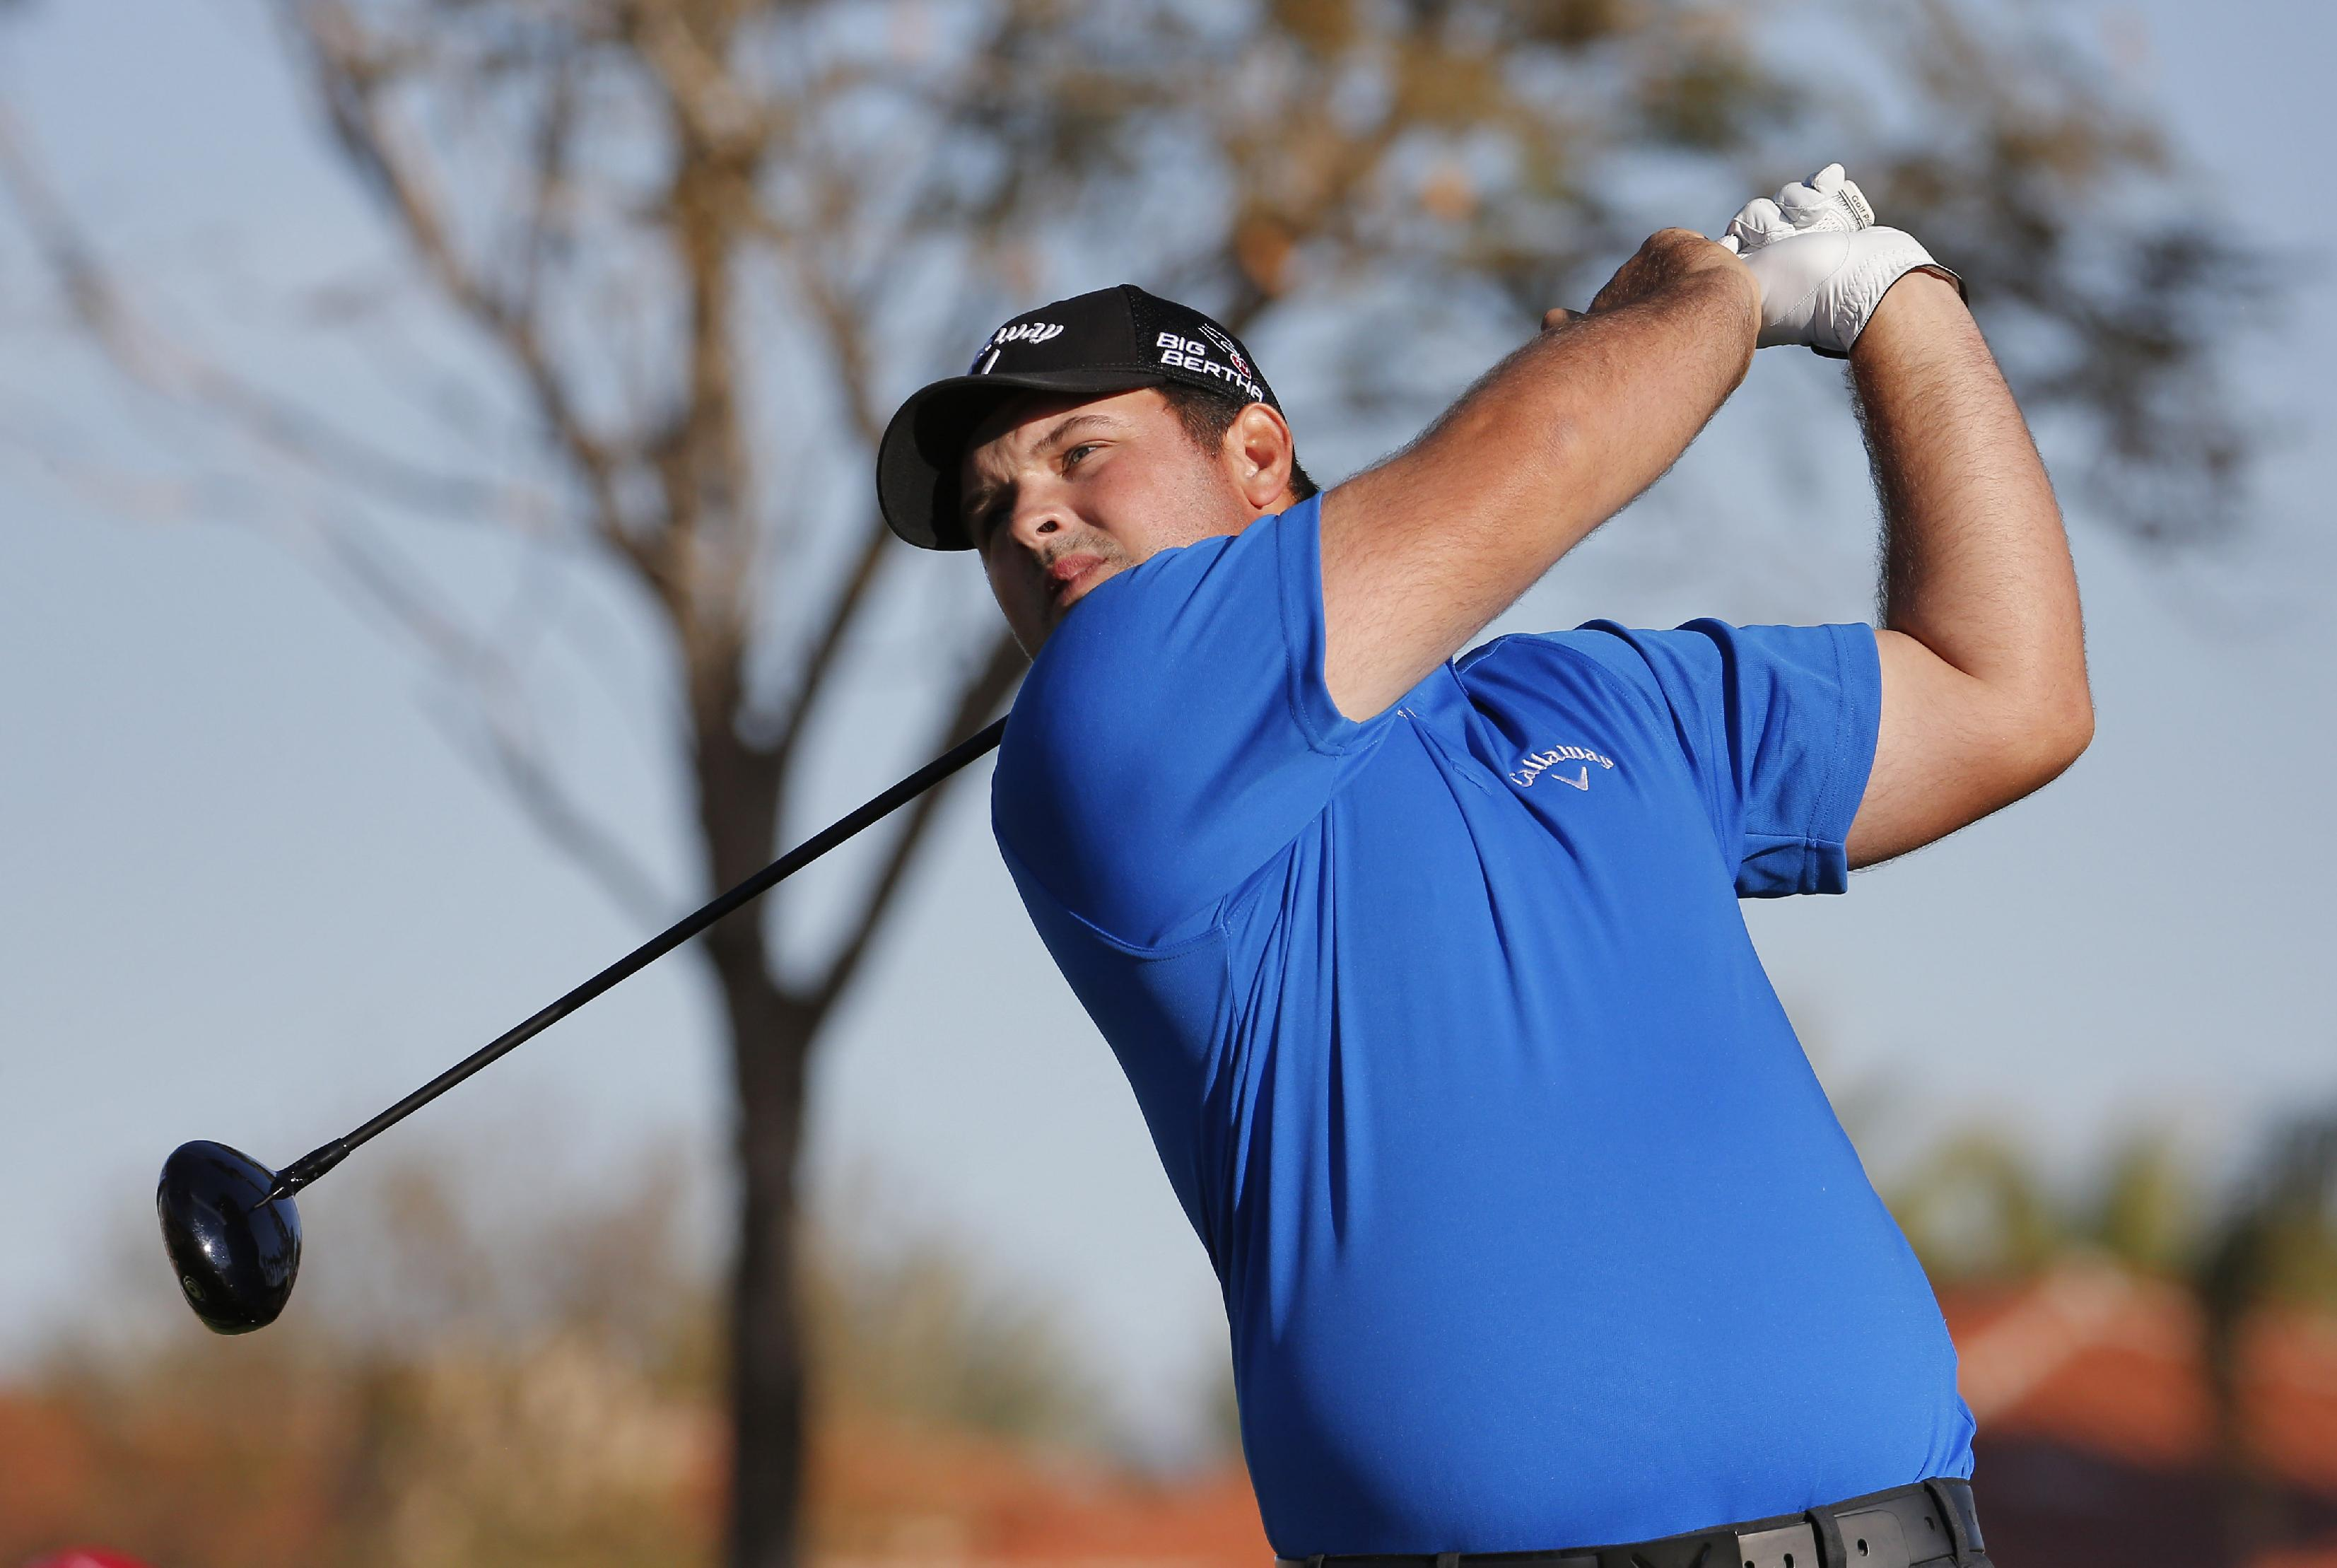 Patrick Reed hits from the 10th tee during the third round of the Humana Challenge PGA golf tournament on the Nicklaus Private course at PGA West, Saturday, Jan. 18, 2014, in La Quinta, Calif